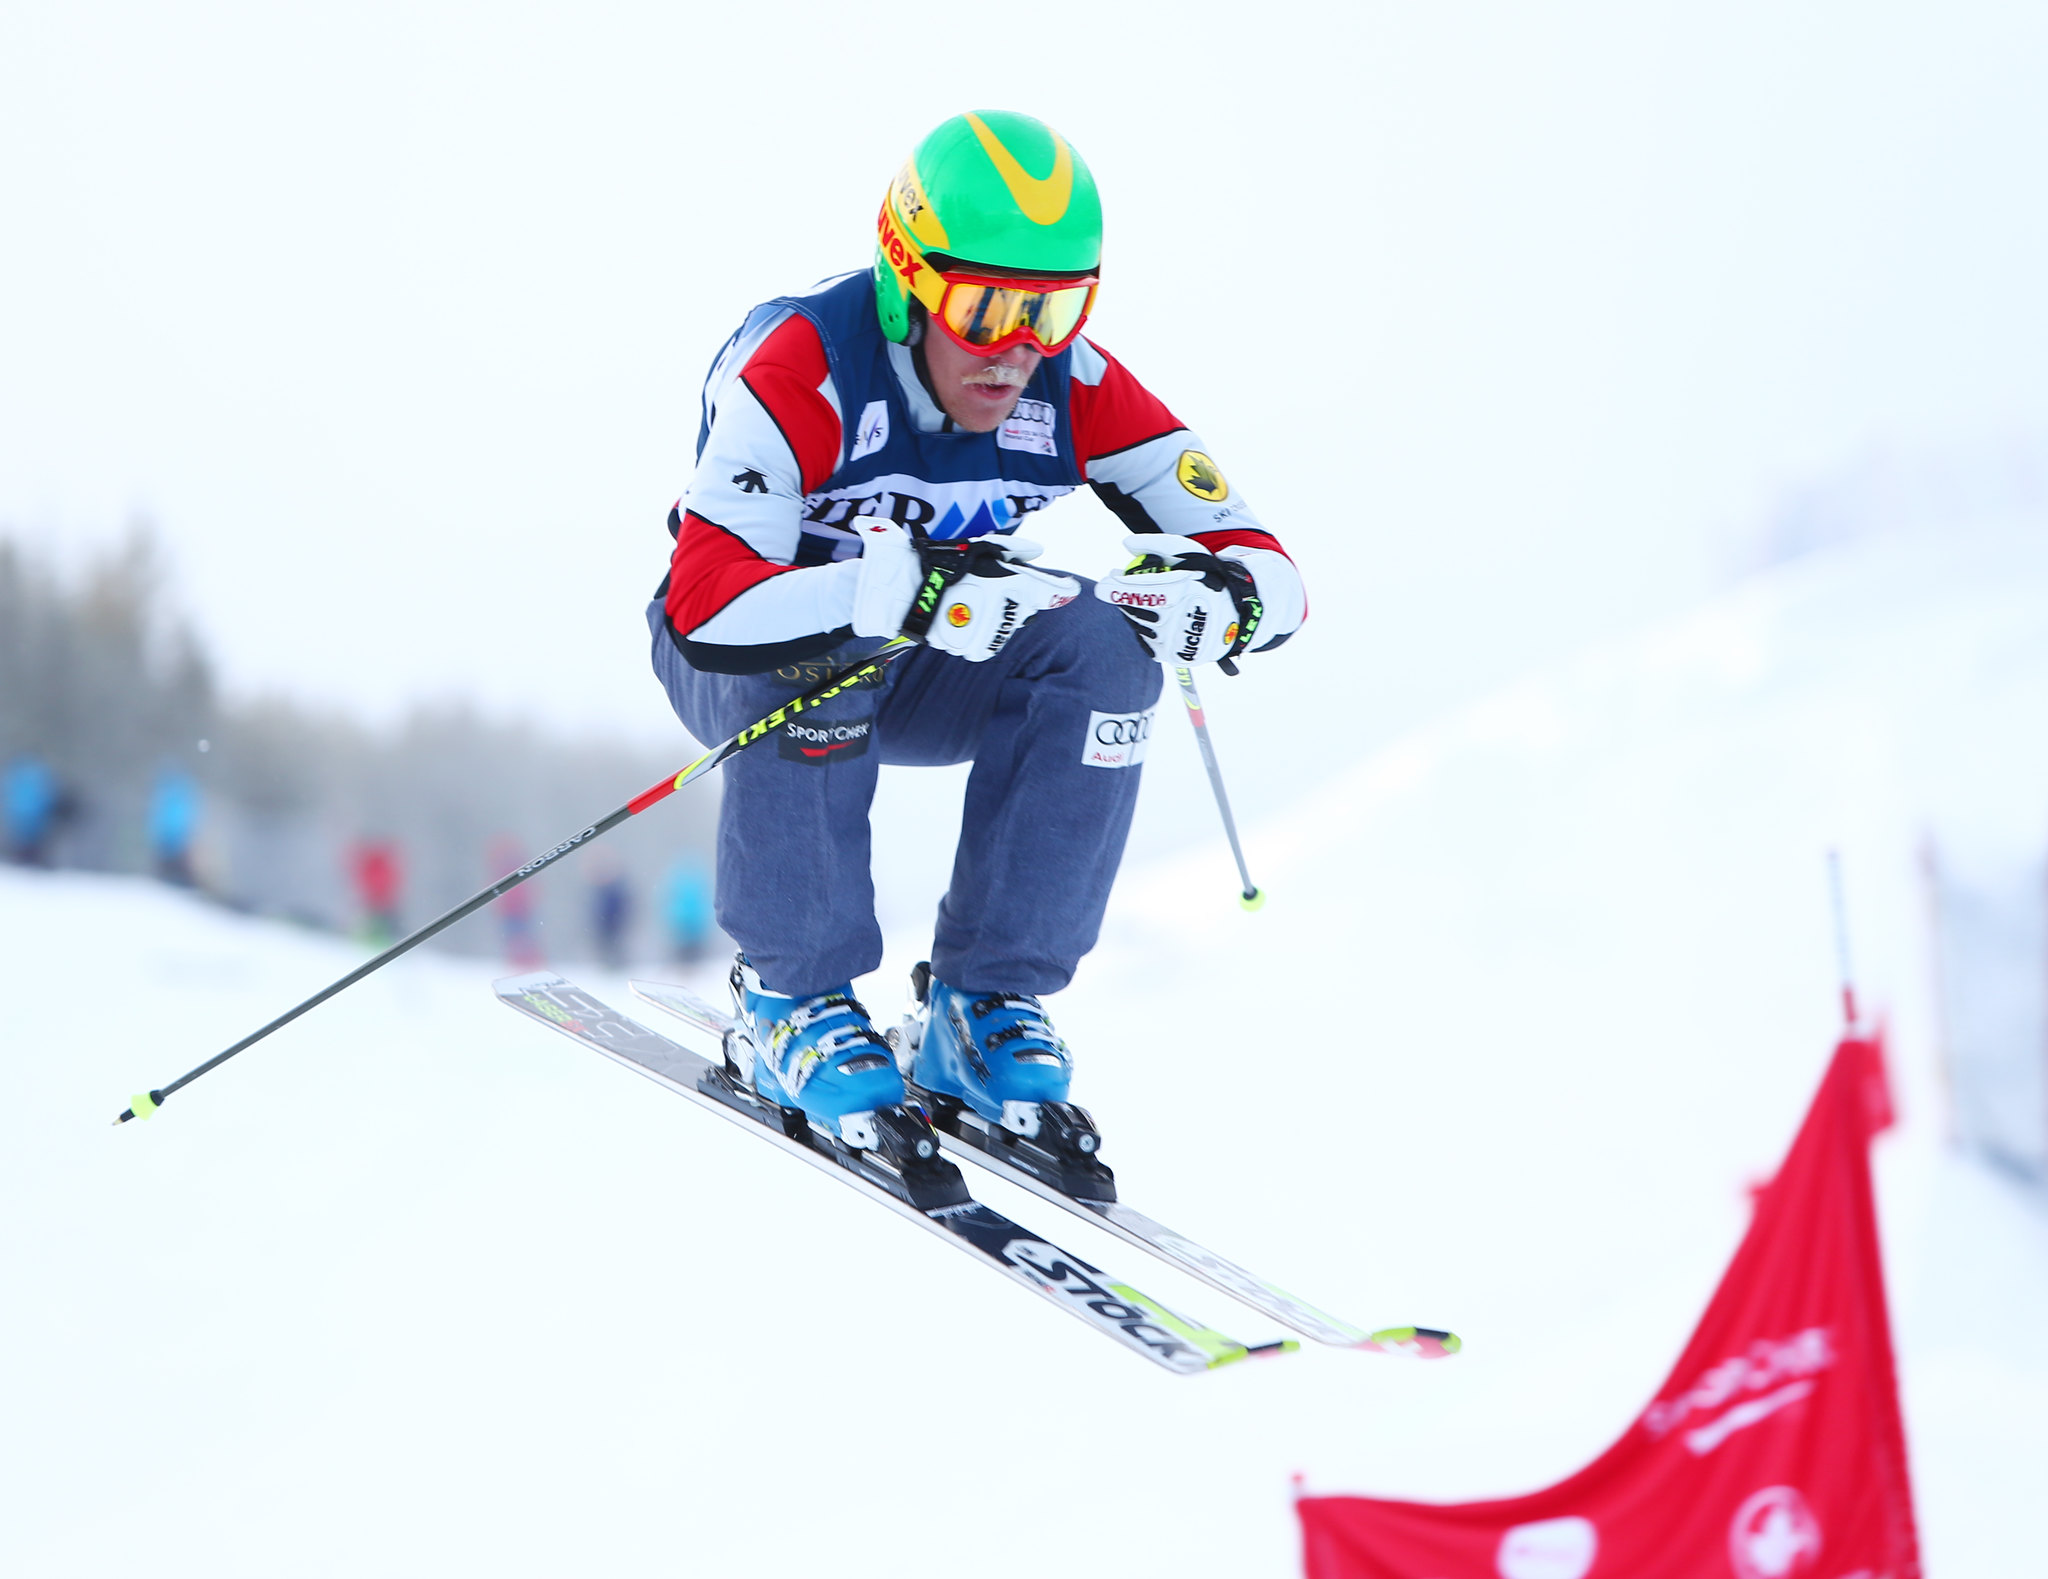 Dave Duncan charges ahead in day 1 of training at the FIS Ski Cross World Cup in Nakiska, CAN